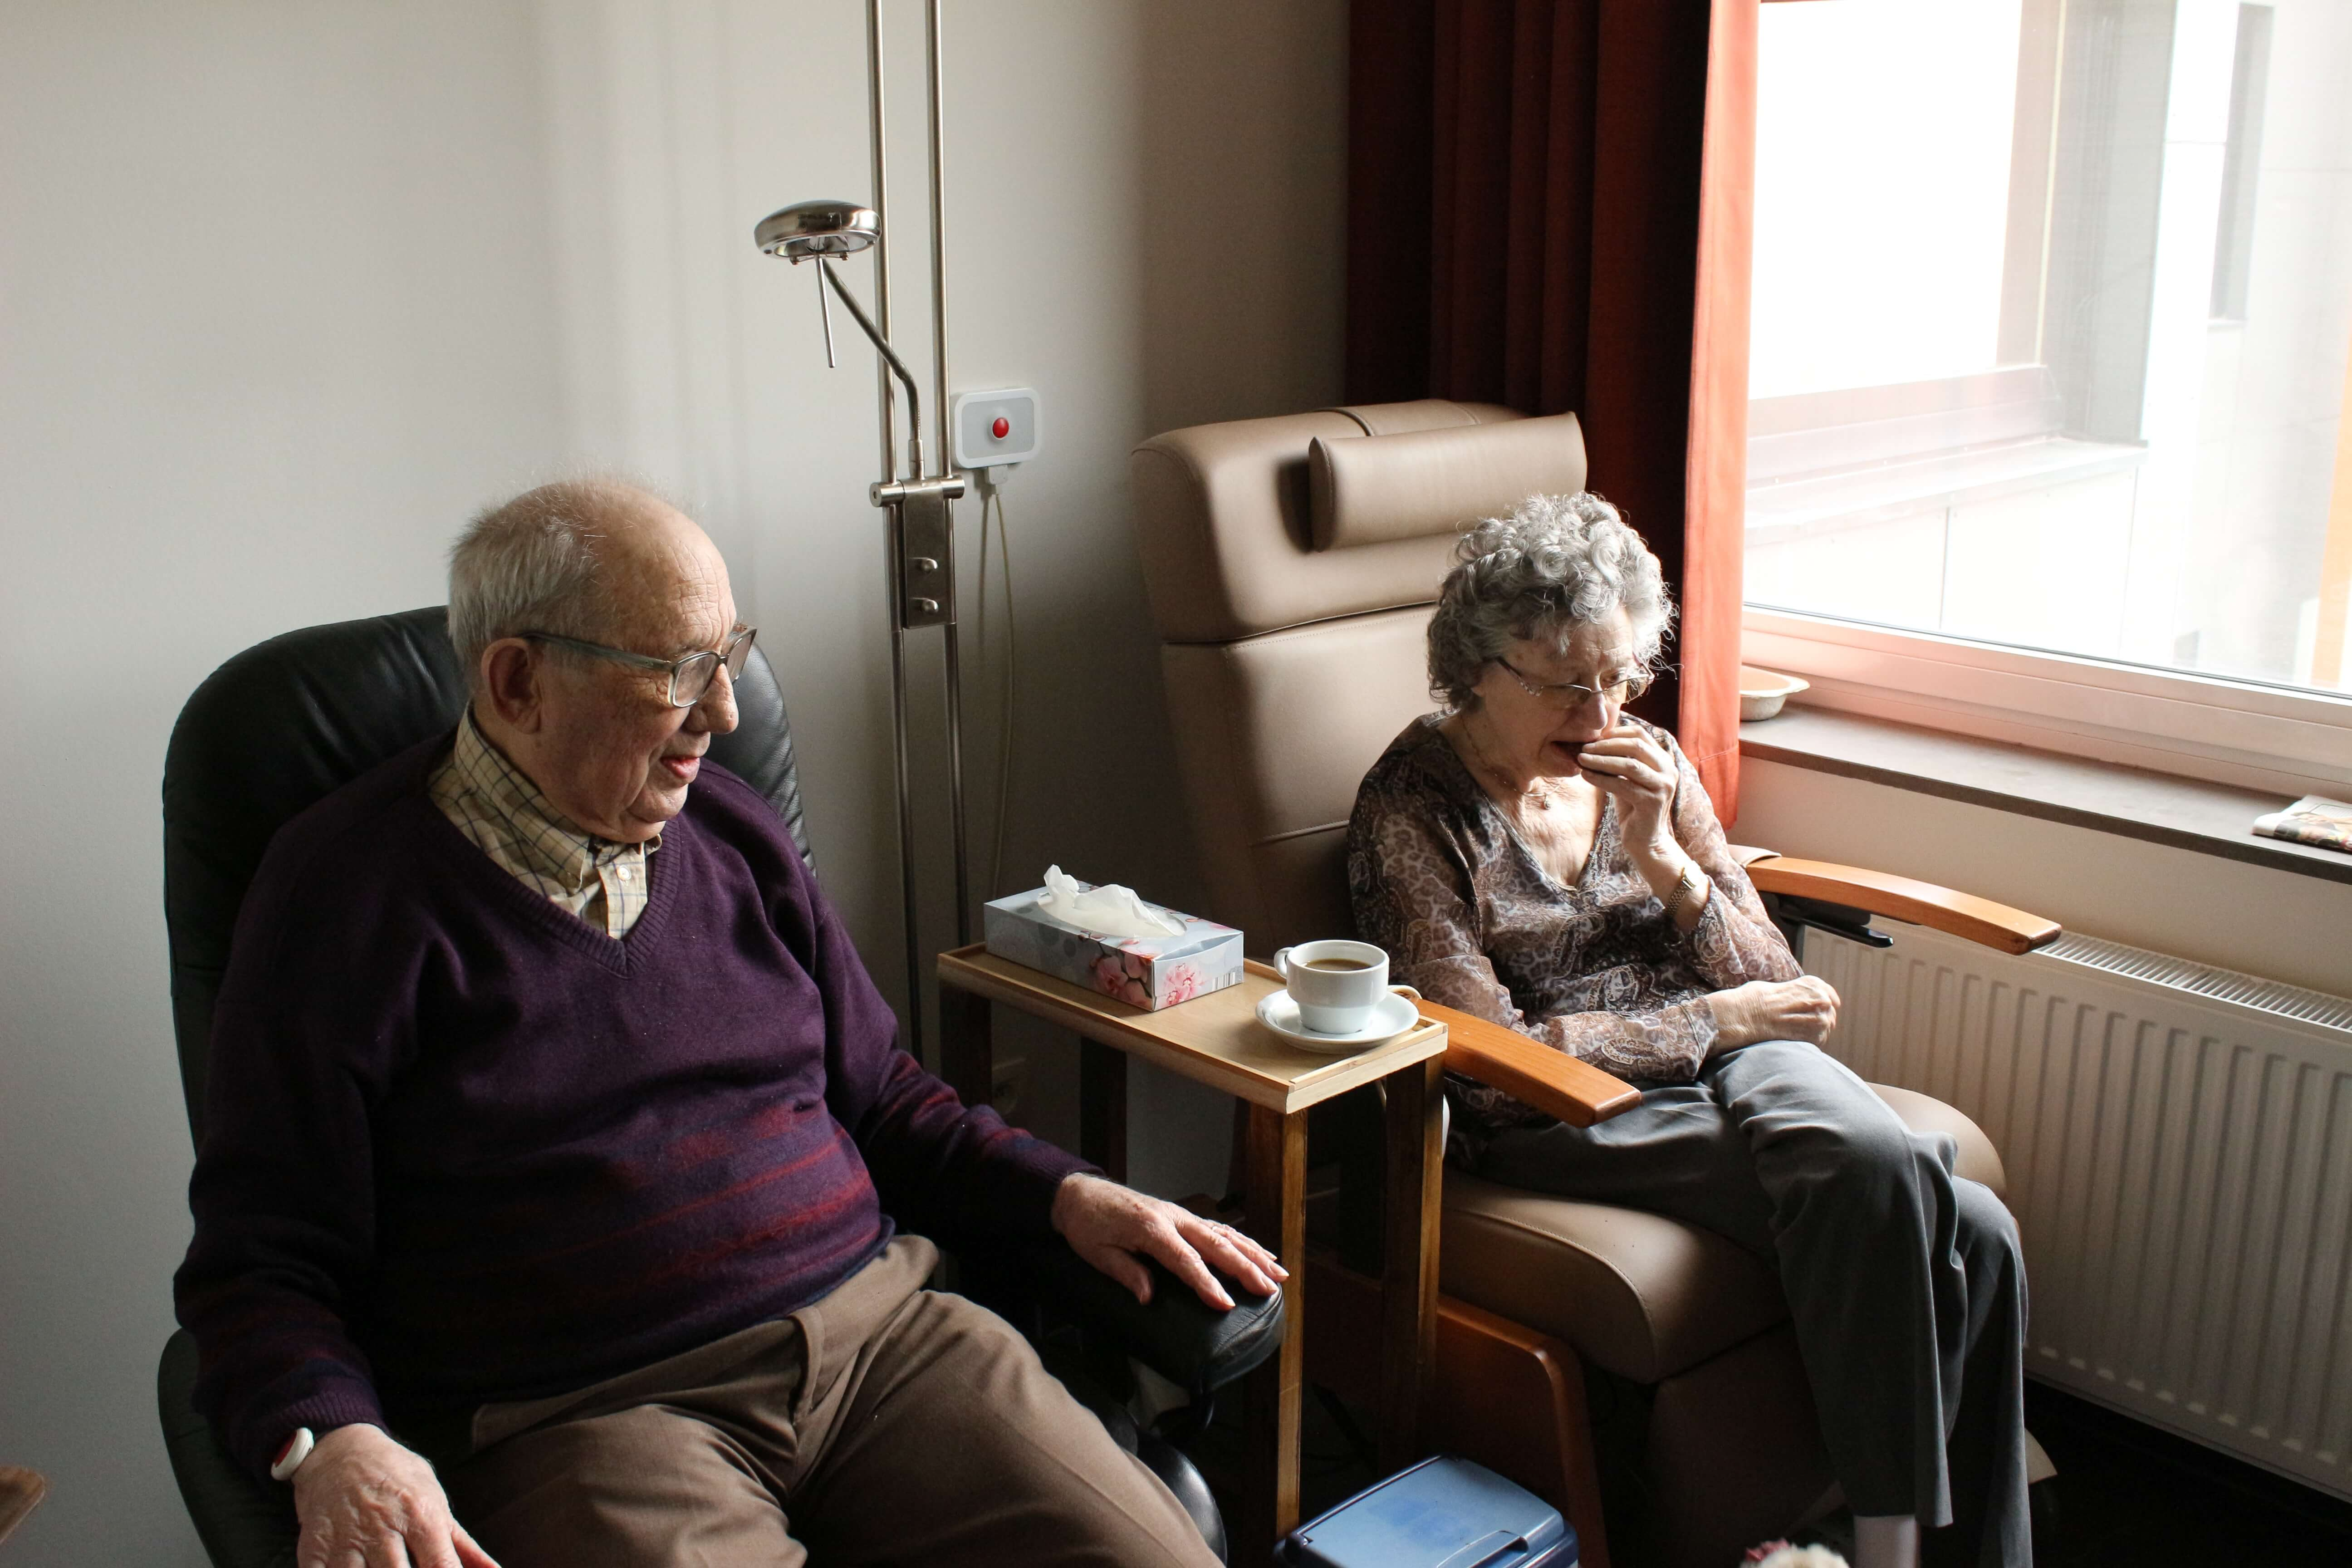 An elderly couple relax in an assisted living residence, sitting next to each other on high-backed chairs next to a window.